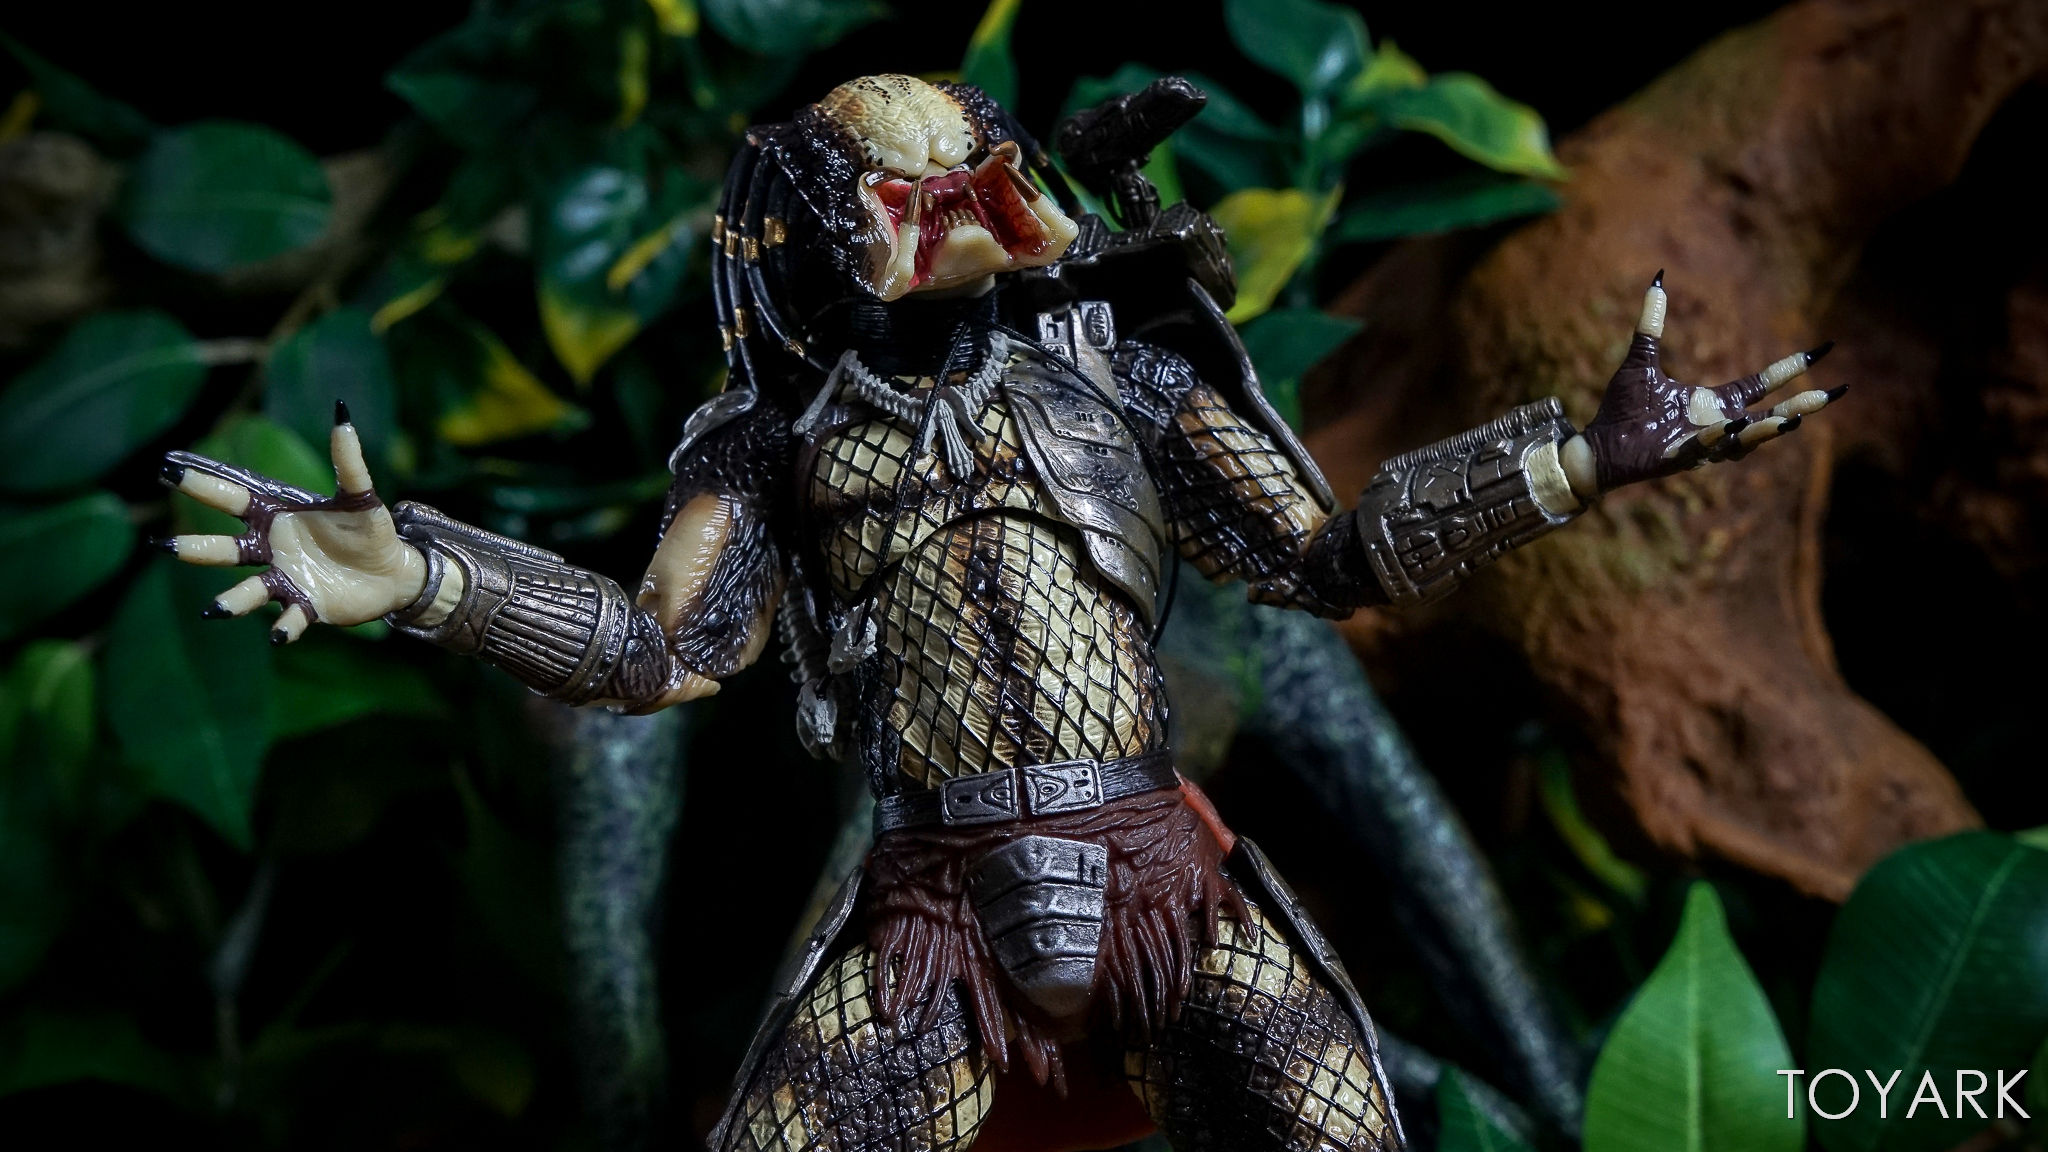 http://news.toyark.com/wp-content/uploads/sites/4/2017/06/Predator-30th-Anniversary-Set-124.jpg